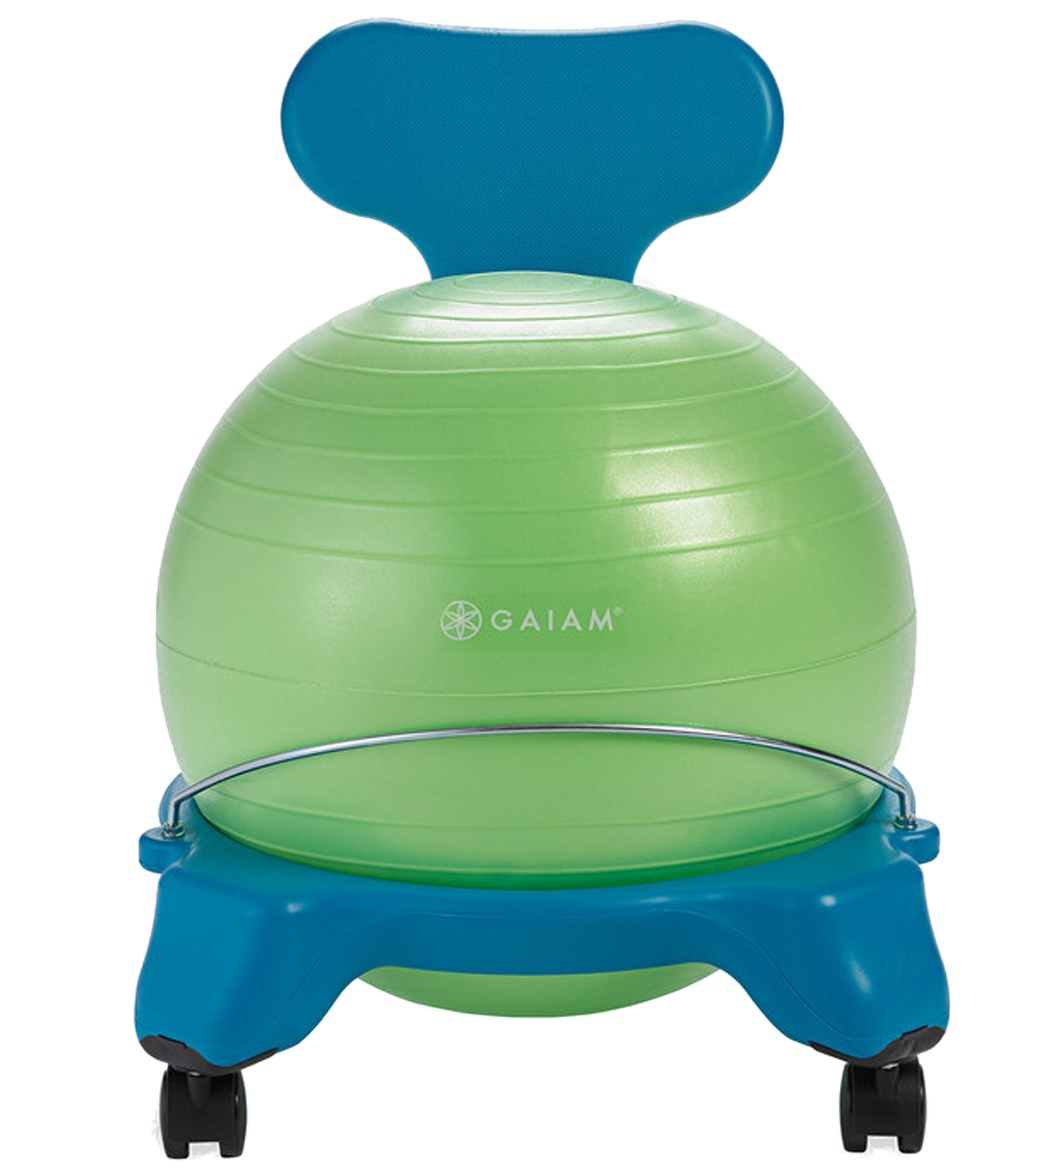 Gaiam Balance Ball Chair Gaiam Kid 39s Yoga Balance Ball Chair At Yogaoutlet